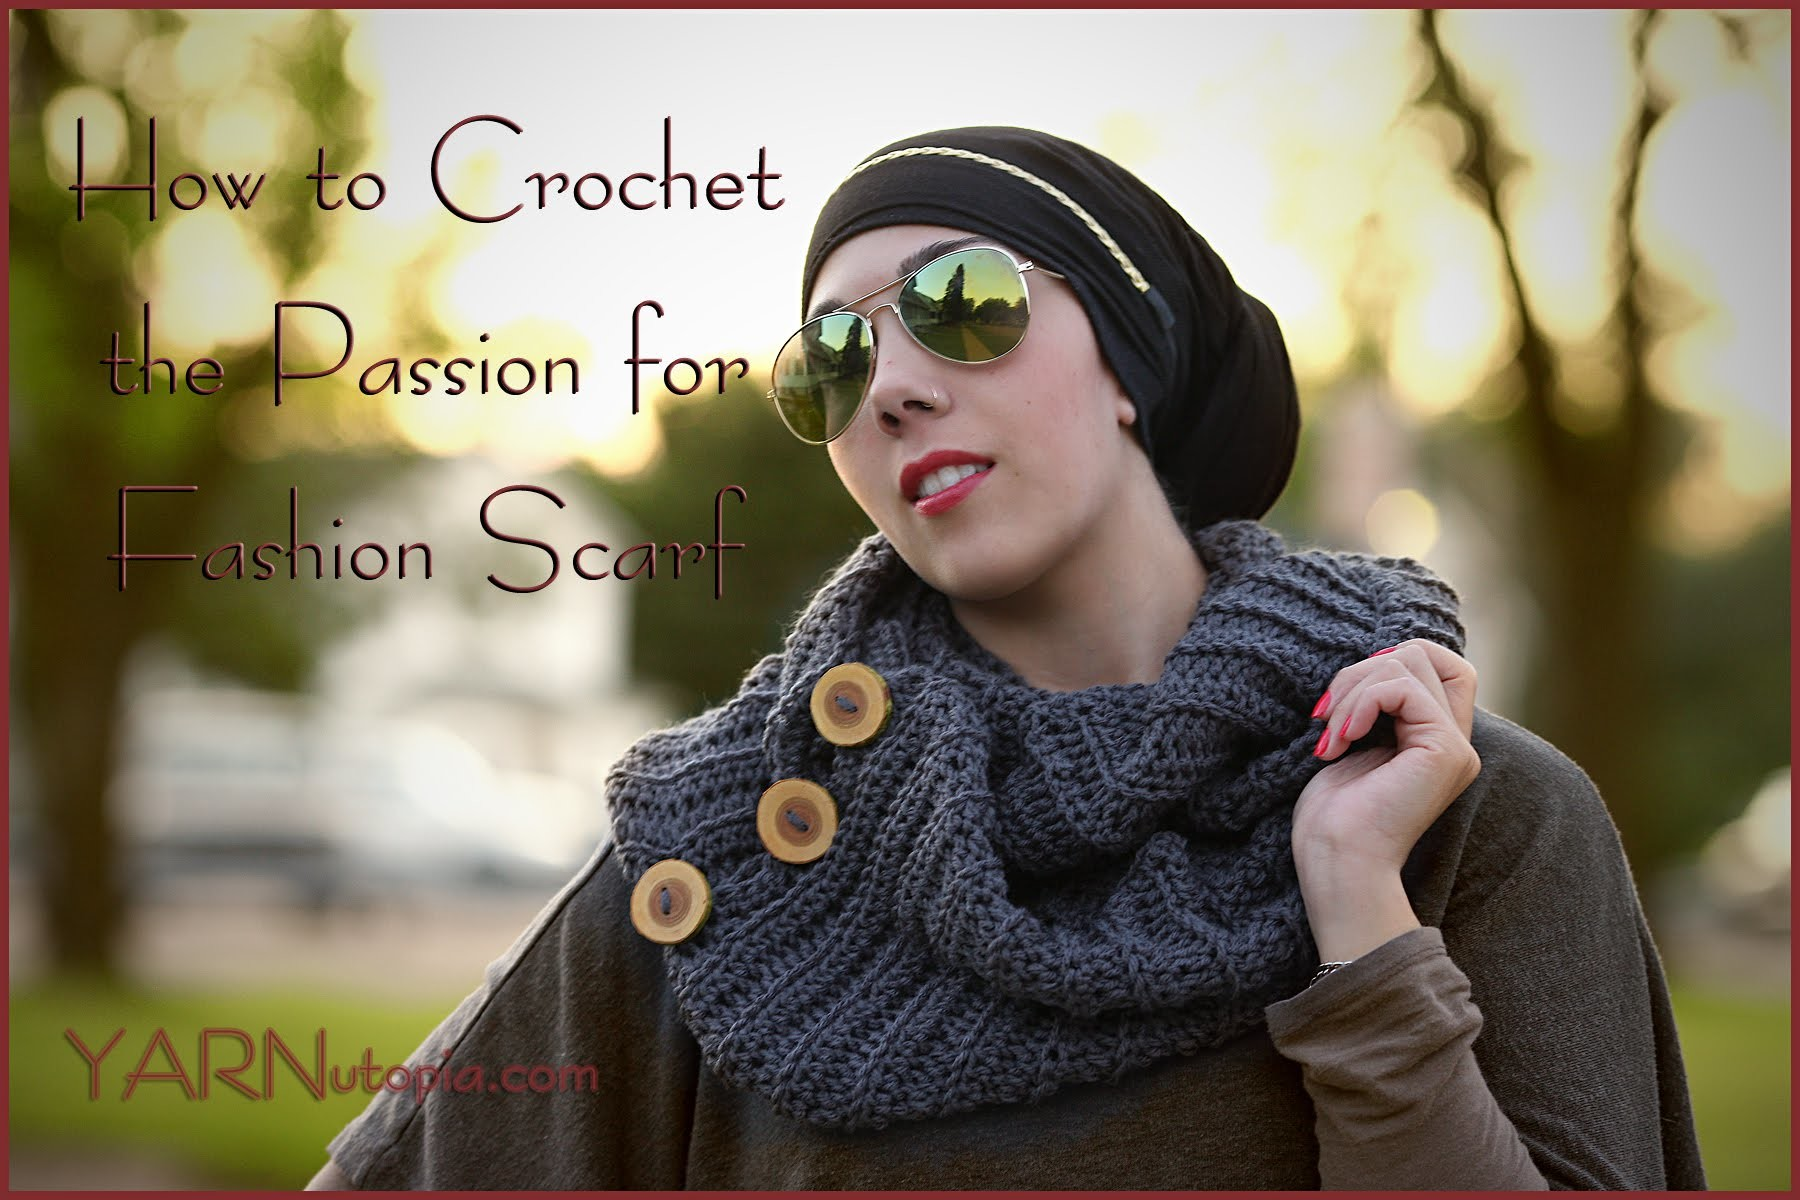 How to Crochet the Passion for Fashion Scarf